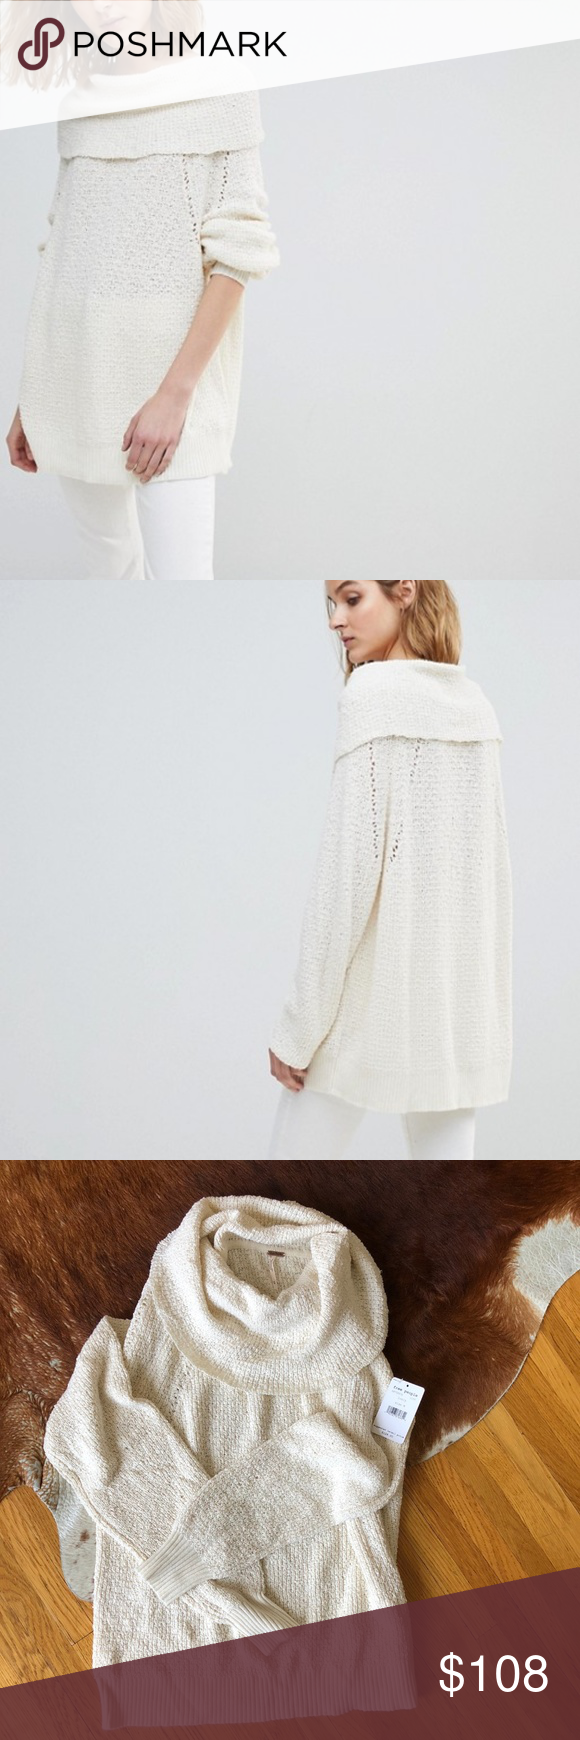 Nwt Free People By Your Side Ivory Sweater Size M Nwt My Posh